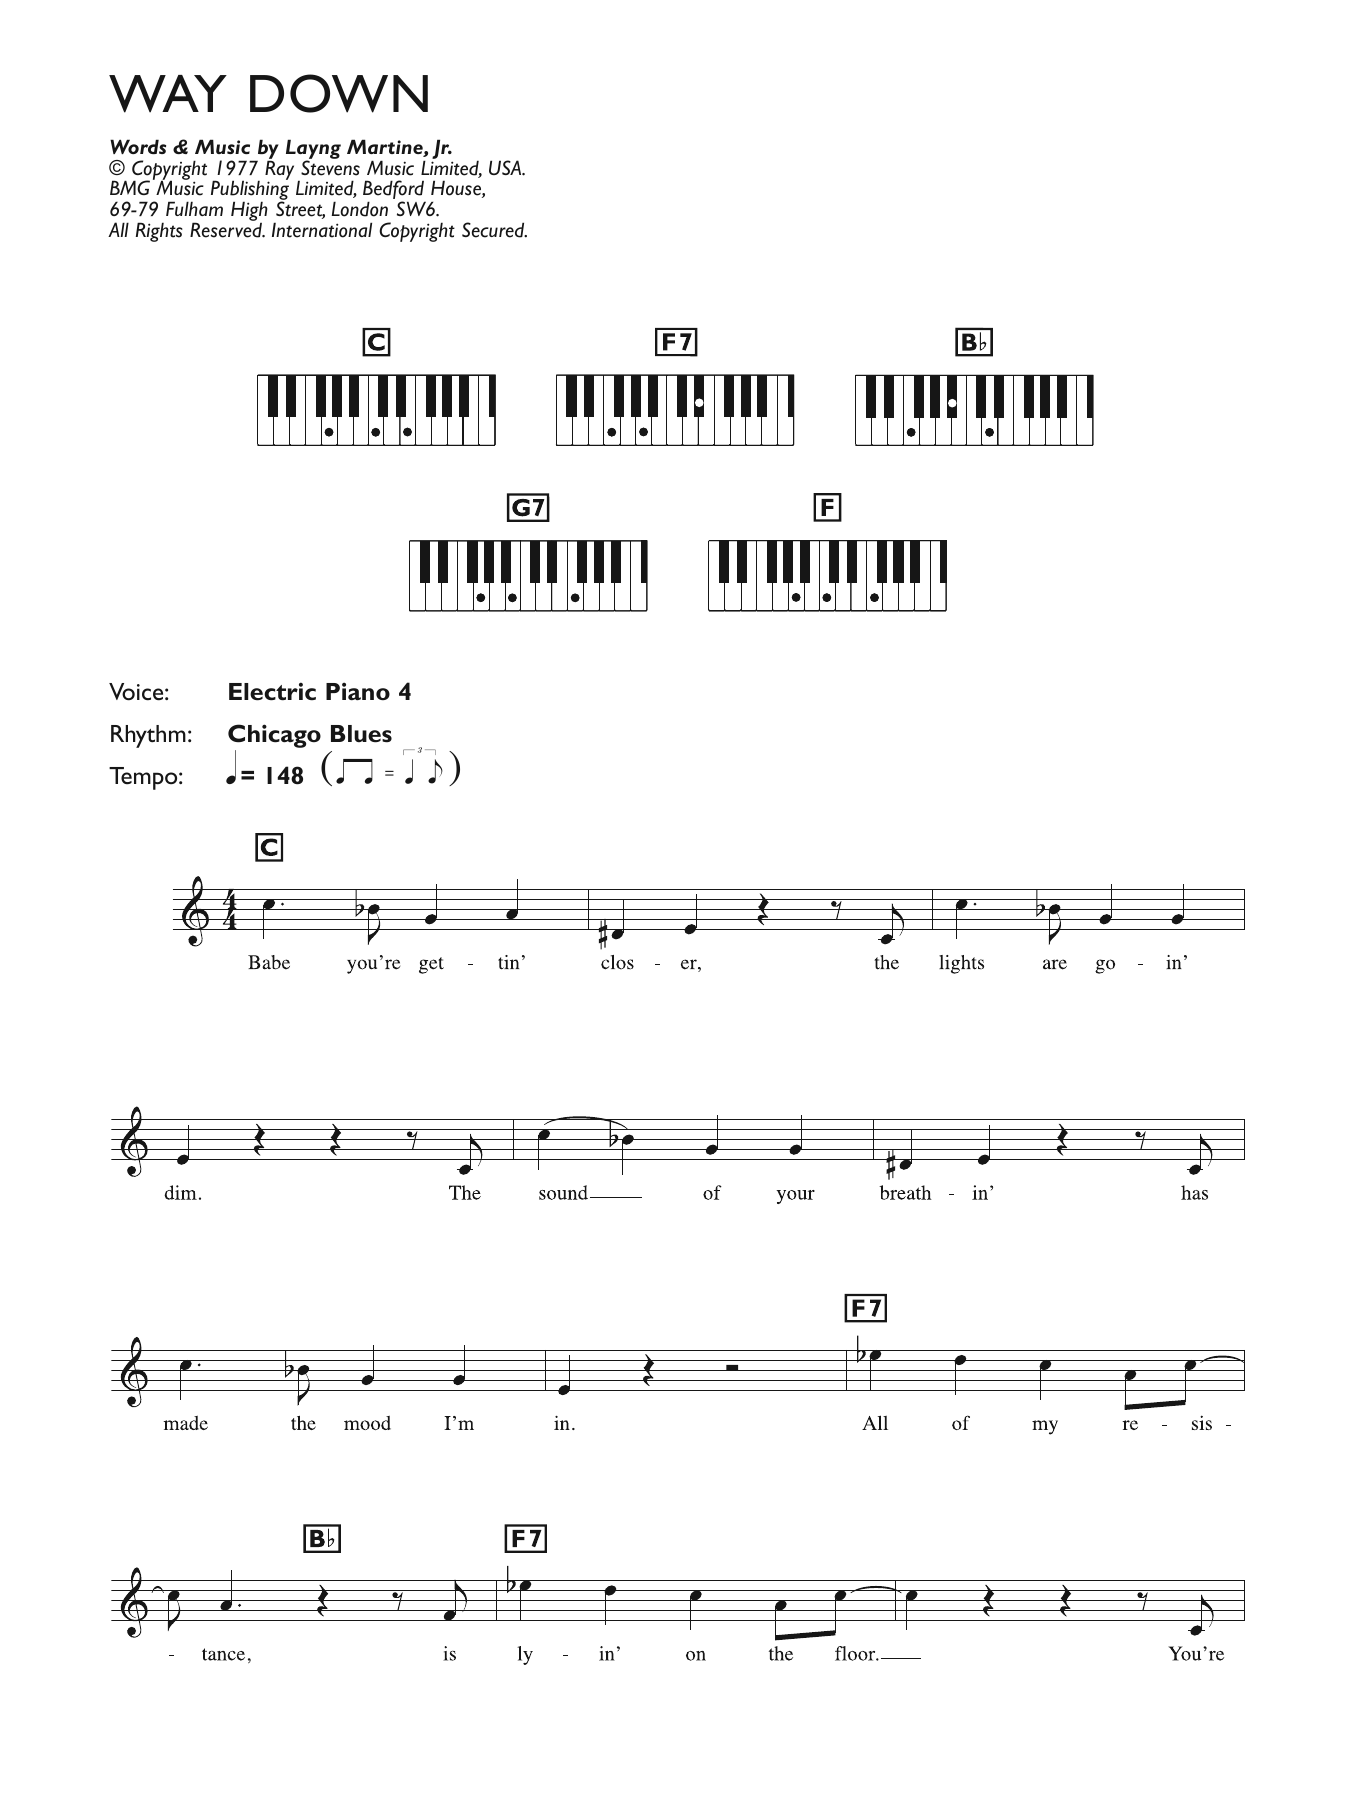 Piano chord sheet music at stantons sheet music elvis presley way down the beach boys surfin usa hexwebz Images